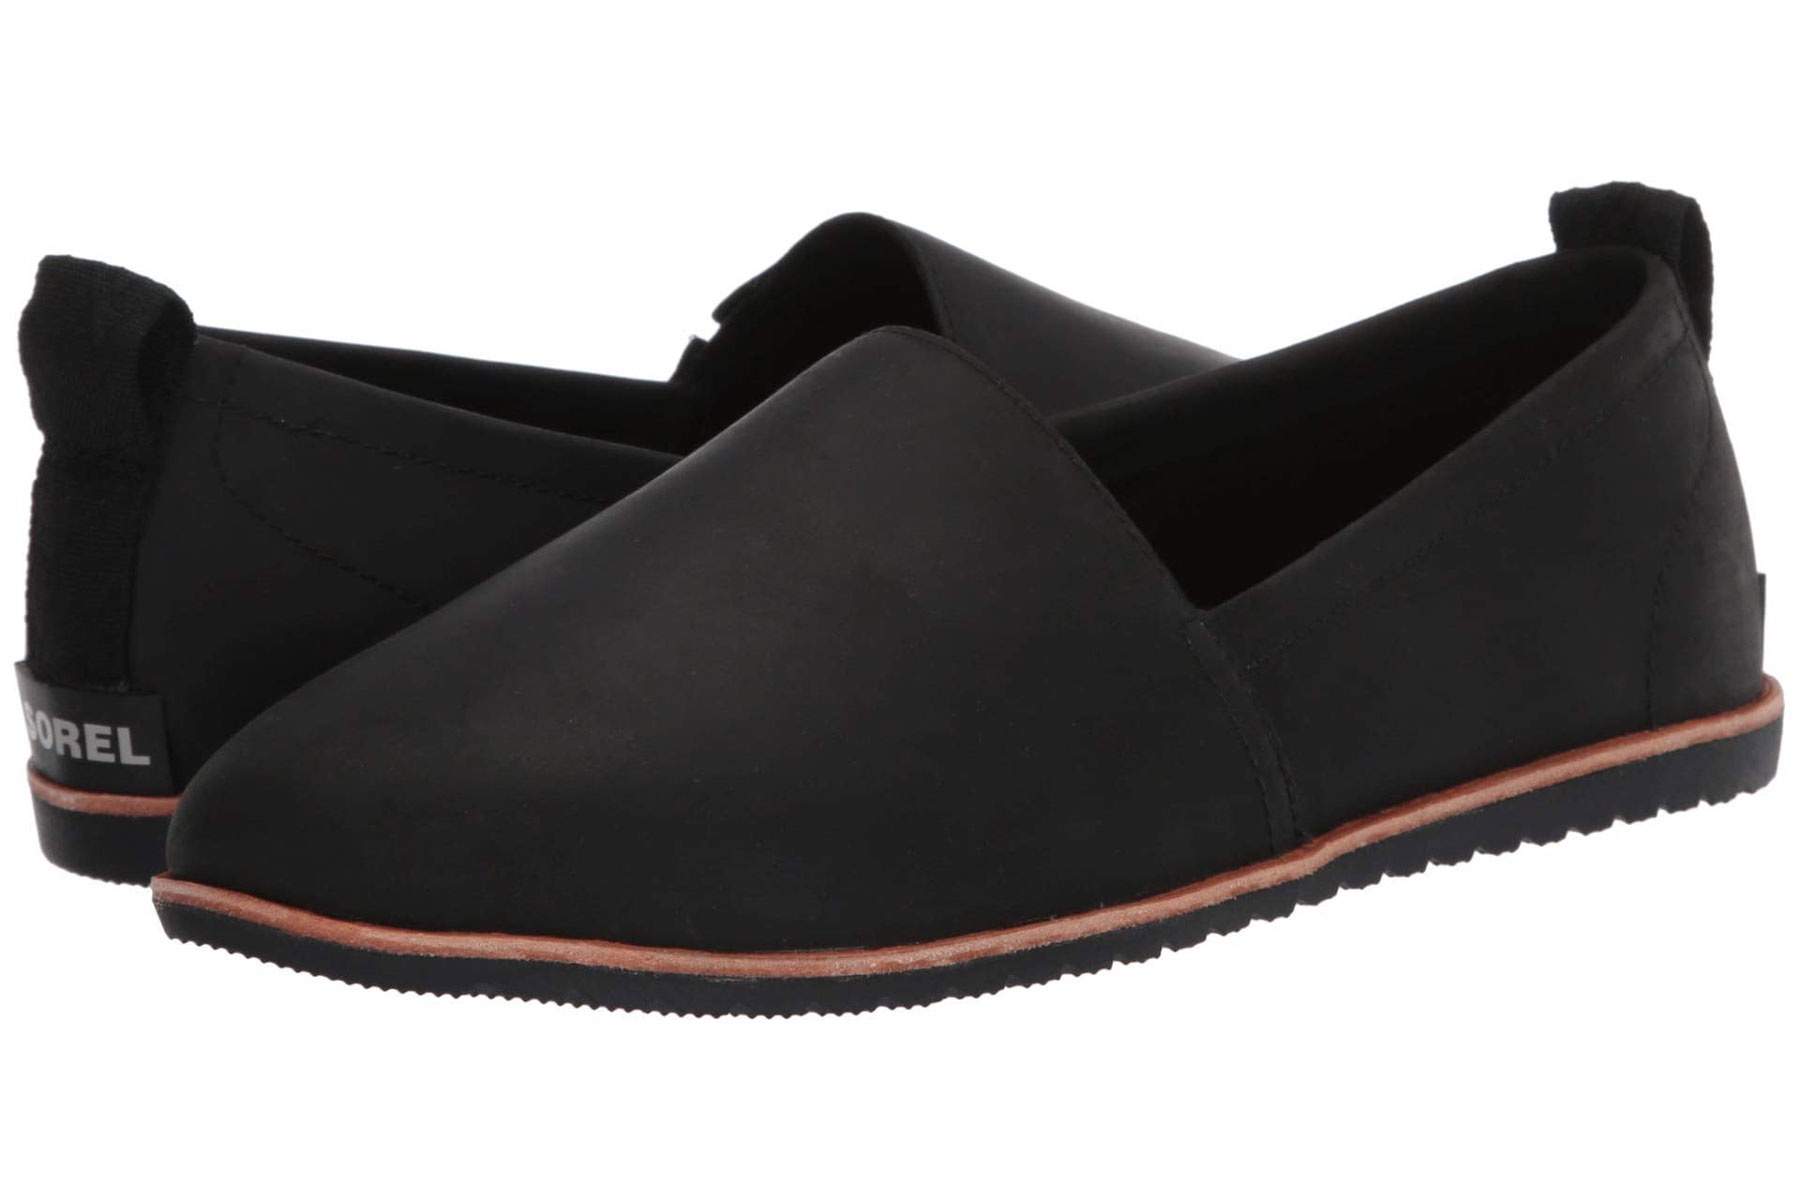 Women's black leather slip on shoes